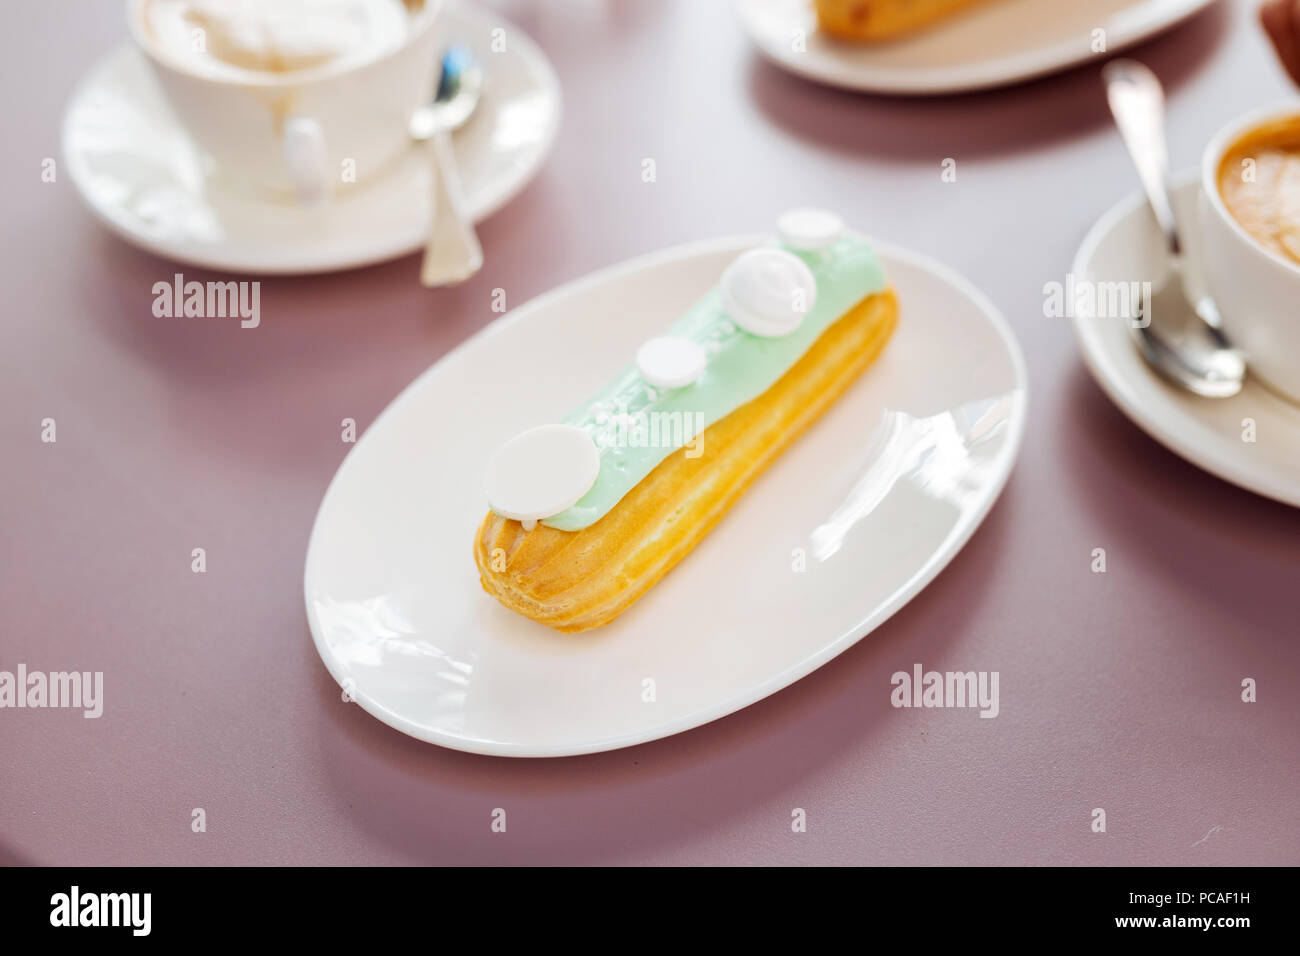 Amazing eclair resting on plate - Stock Image